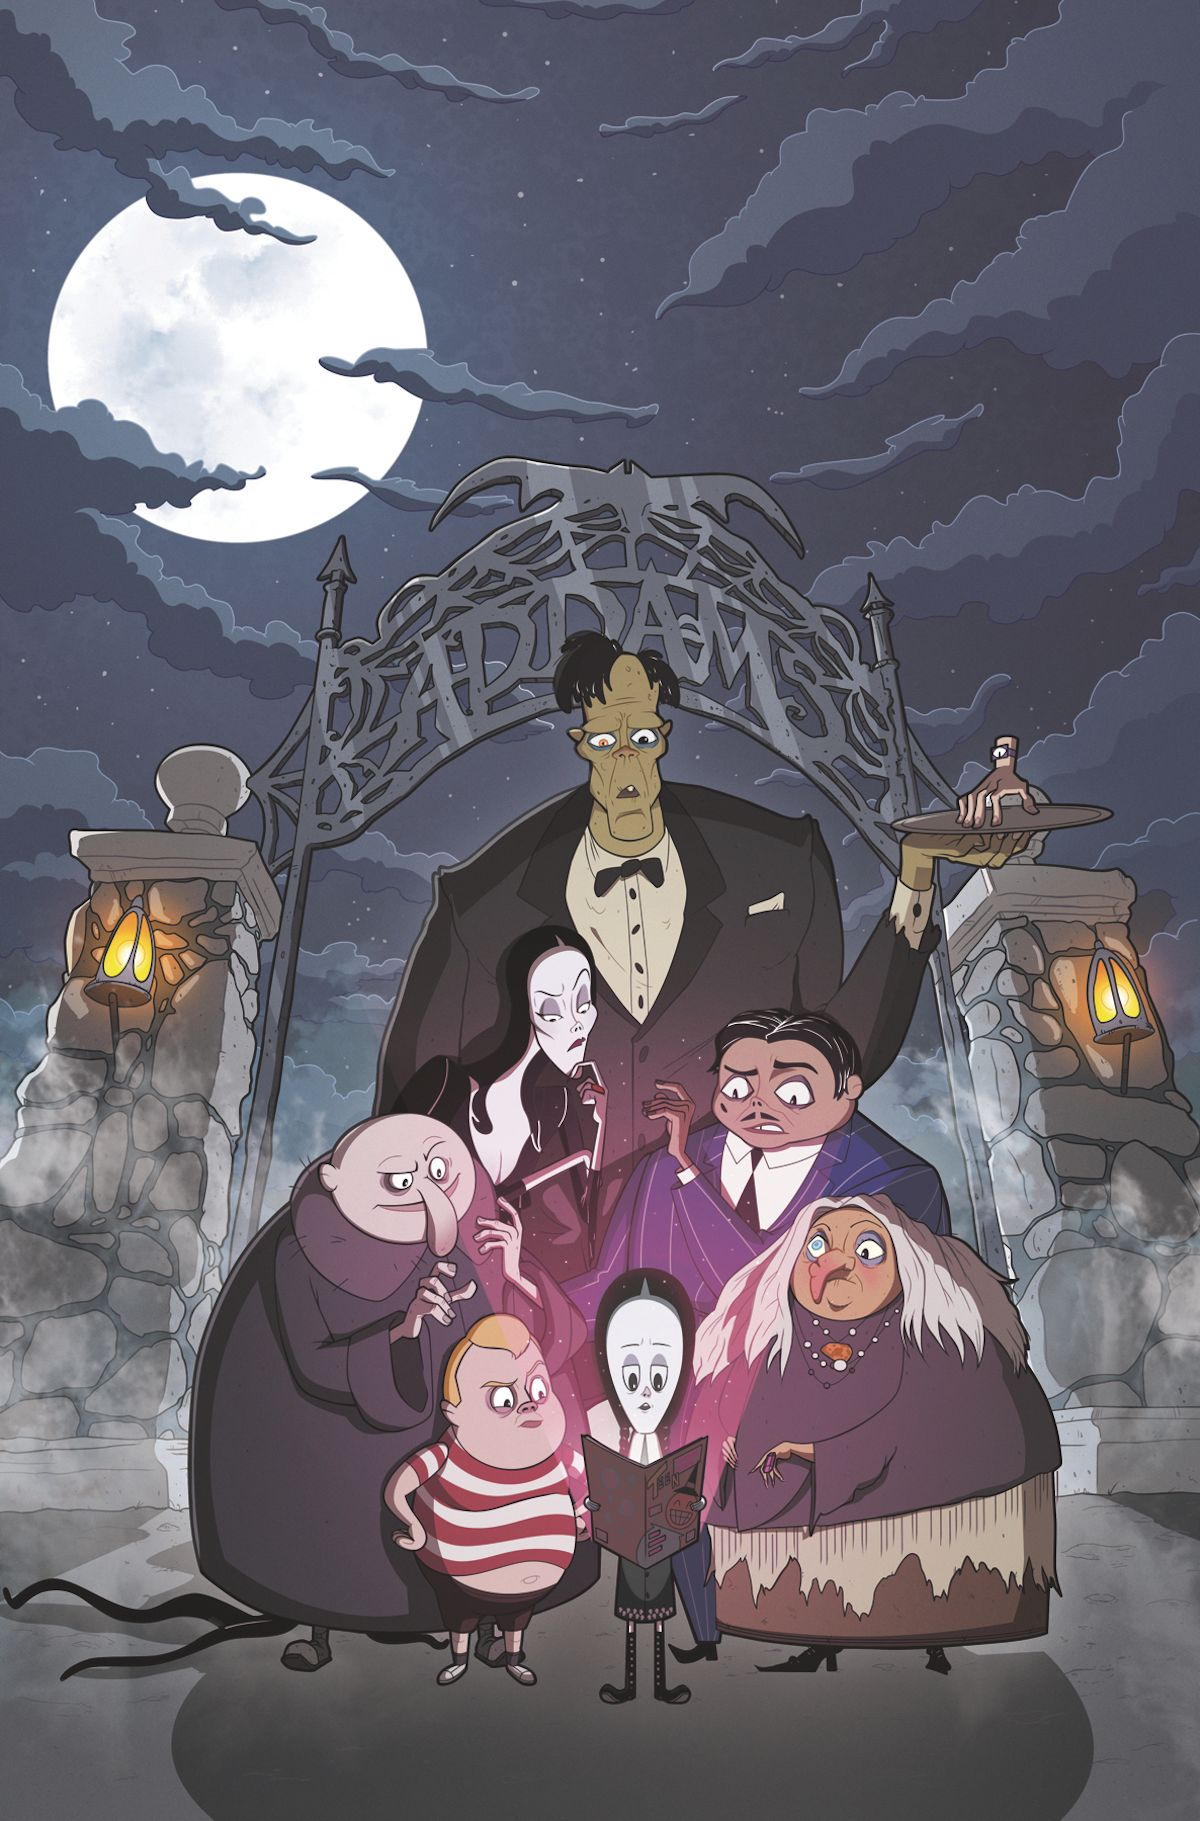 Addams Family: The Bodies